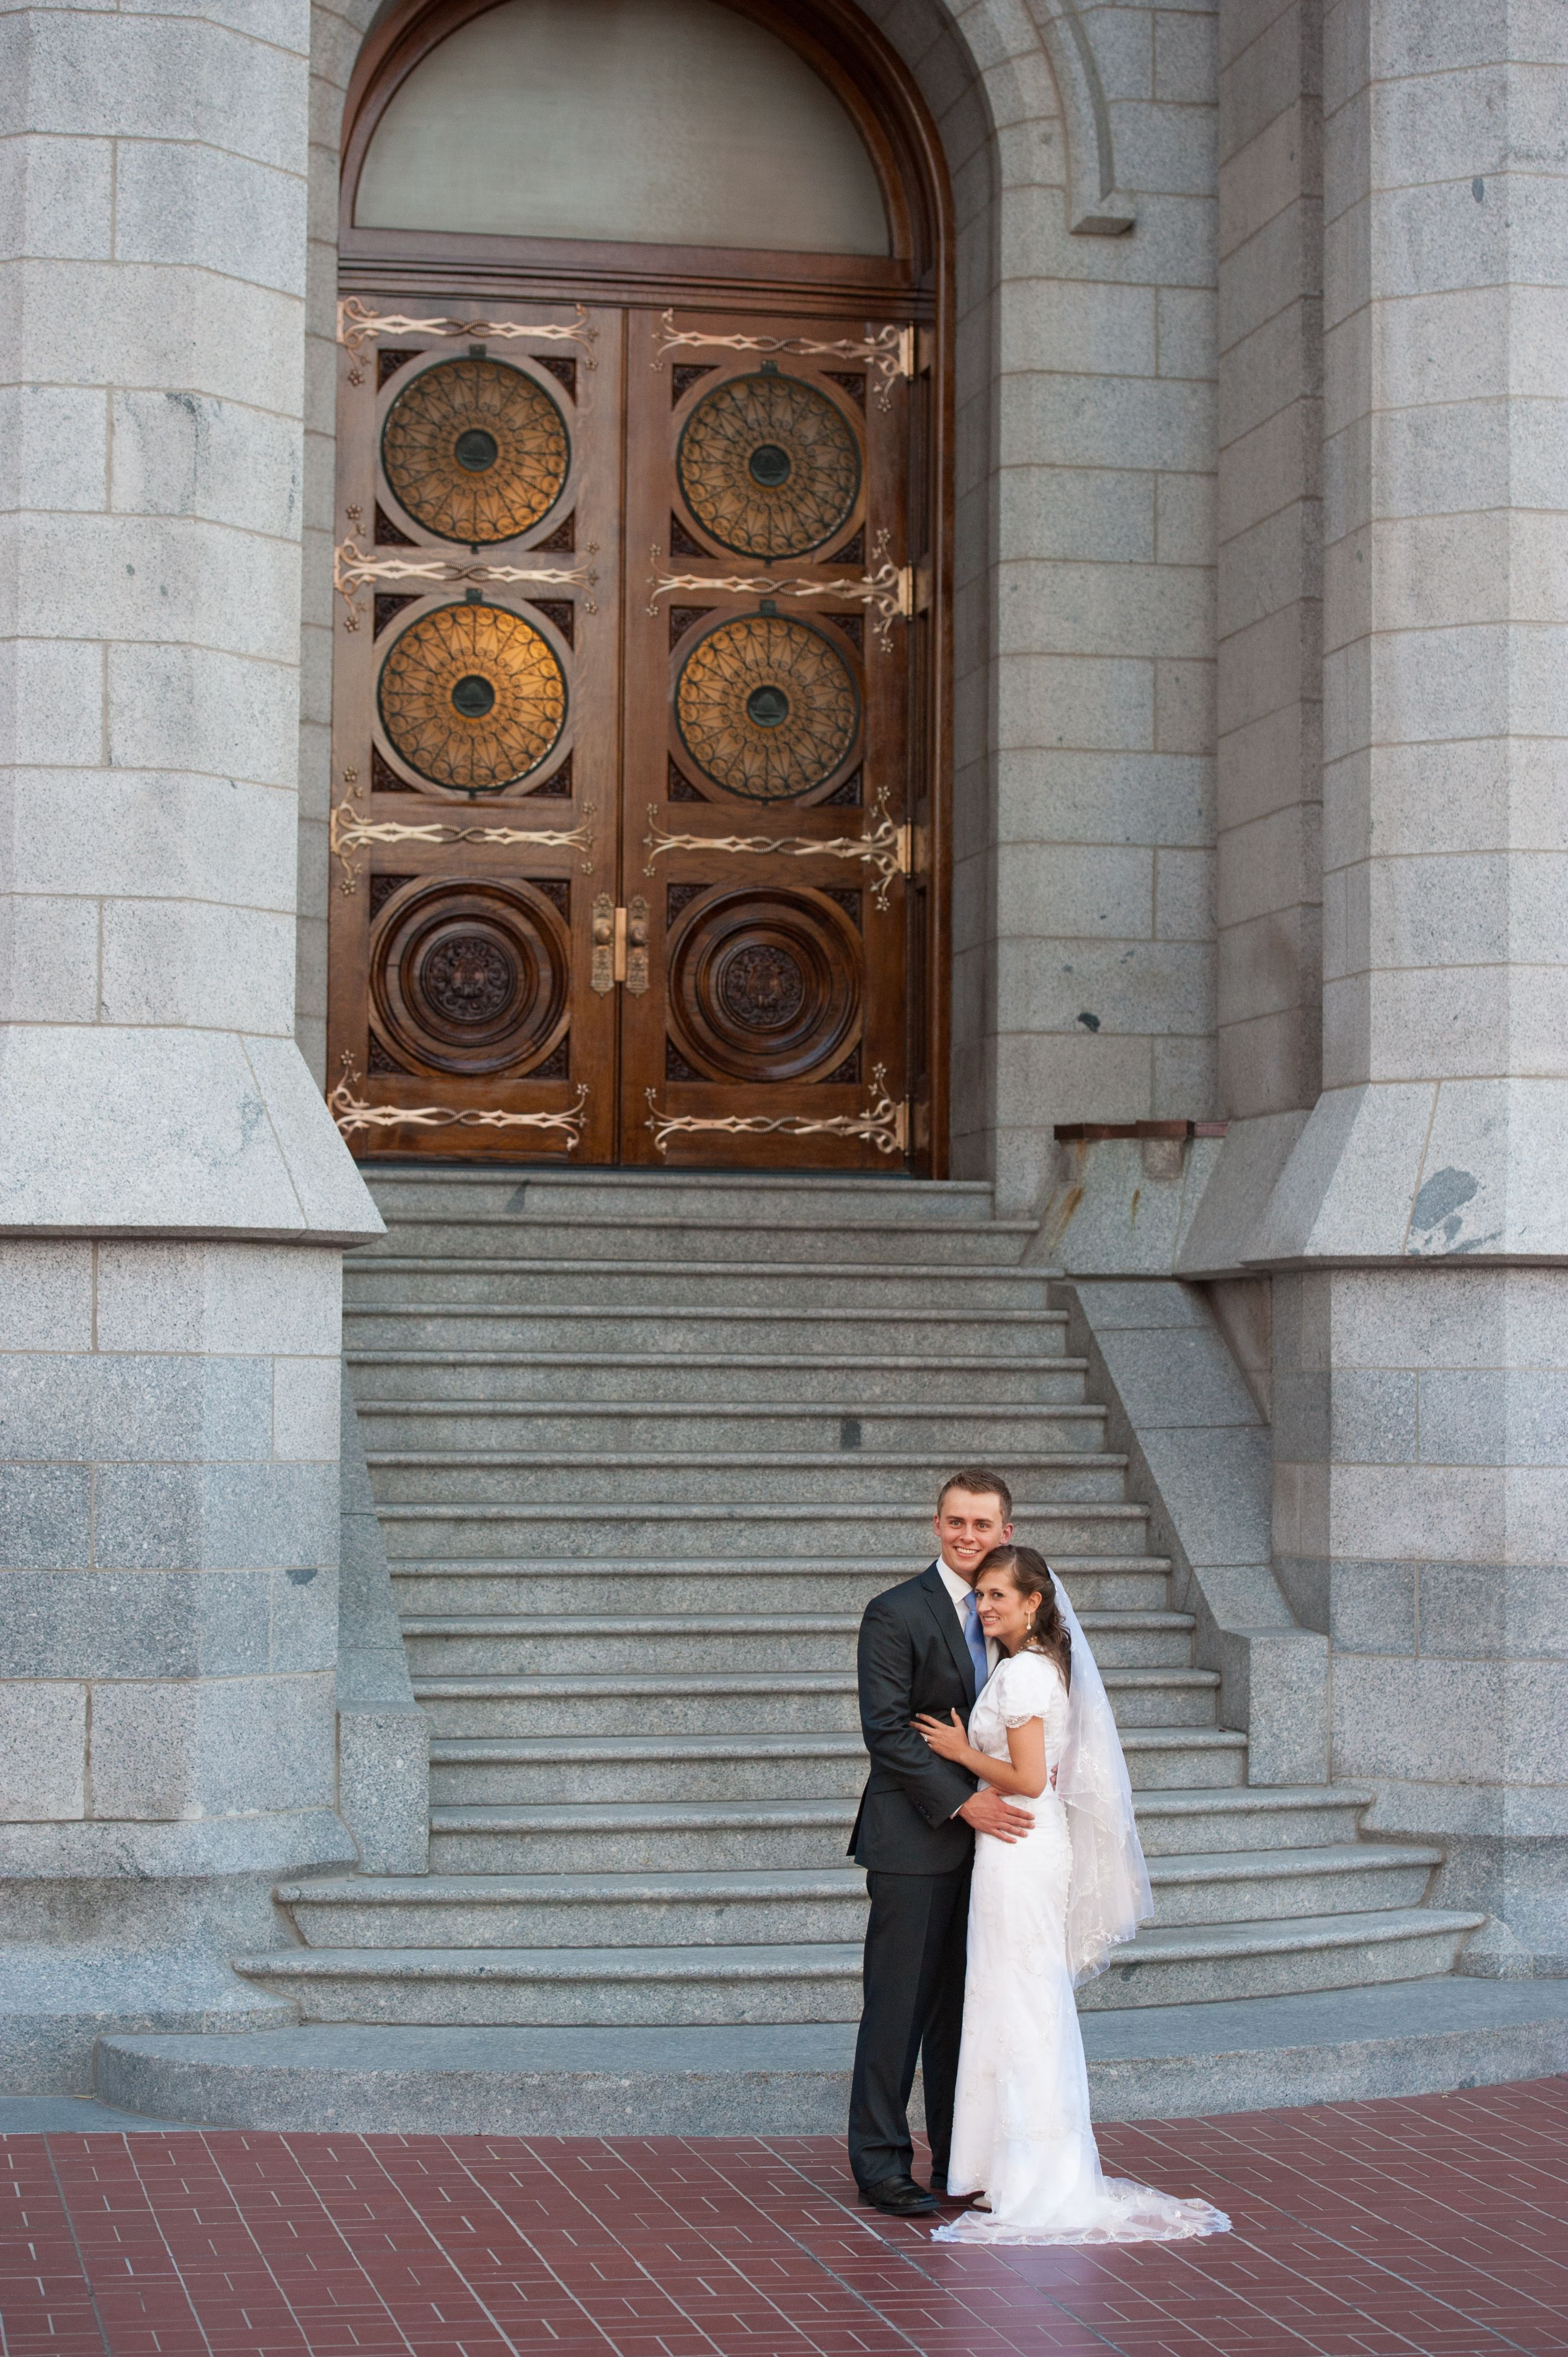 Light up wedding dress  Salt Lake Temple at Dusk Perfection The lights become lit up from